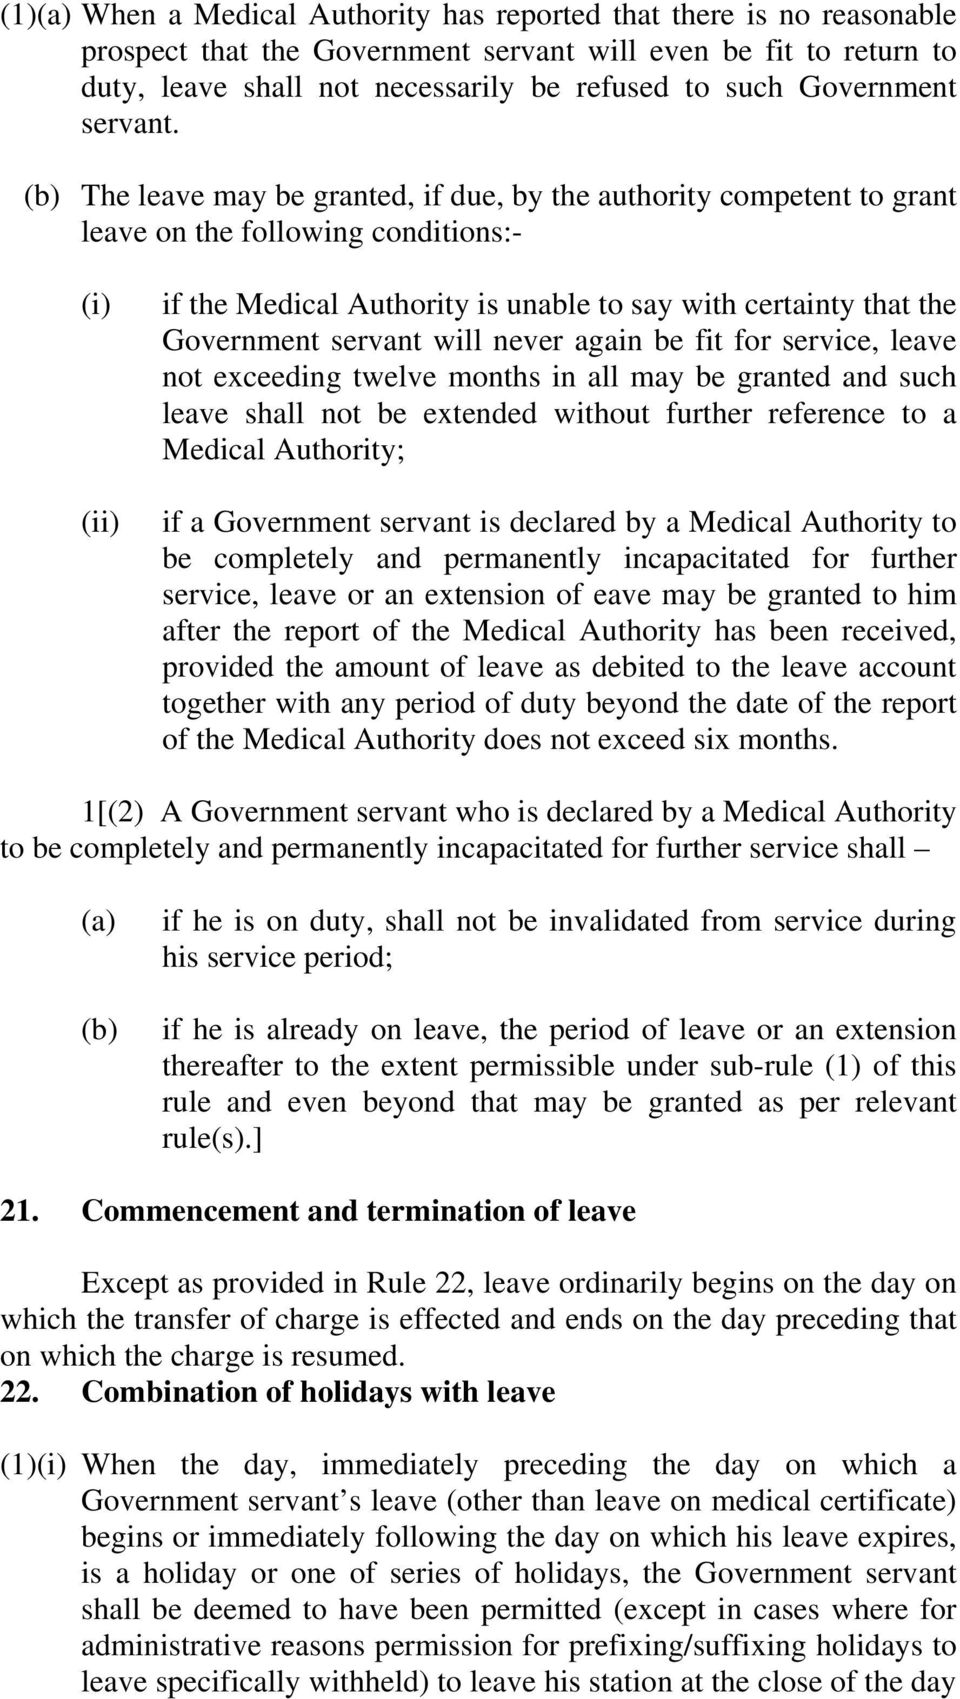 (b) The leave may be granted, if due, by the authority competent to grant leave on the following conditions:- (i) (ii) if the Medical Authority is unable to say with certainty that the Government